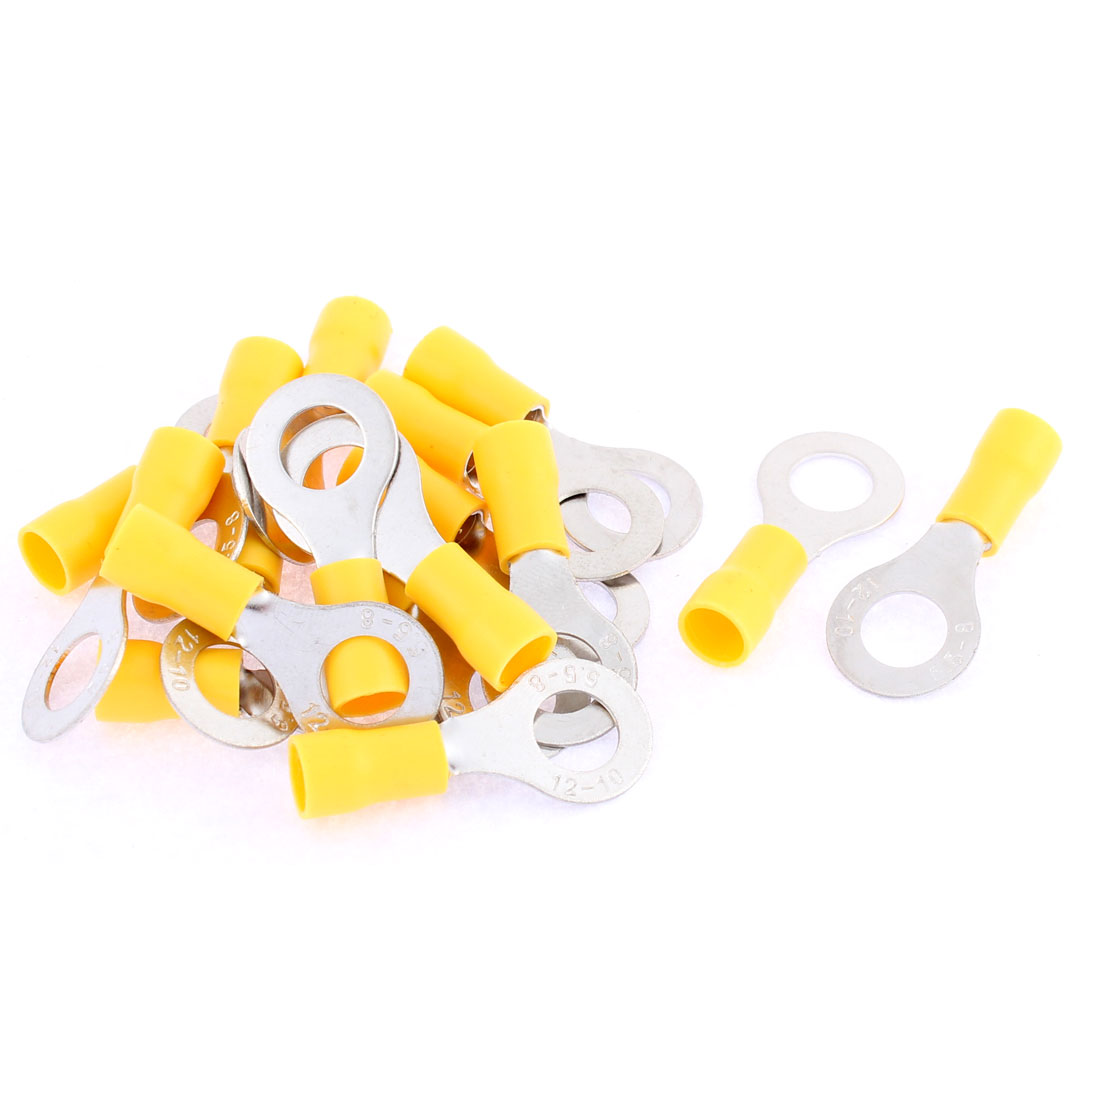 17Pcs RV5.5-8 Yellow Plastic Sleeve Pre Insulated Ring Terminals Connector for AWG 12-10 Wire